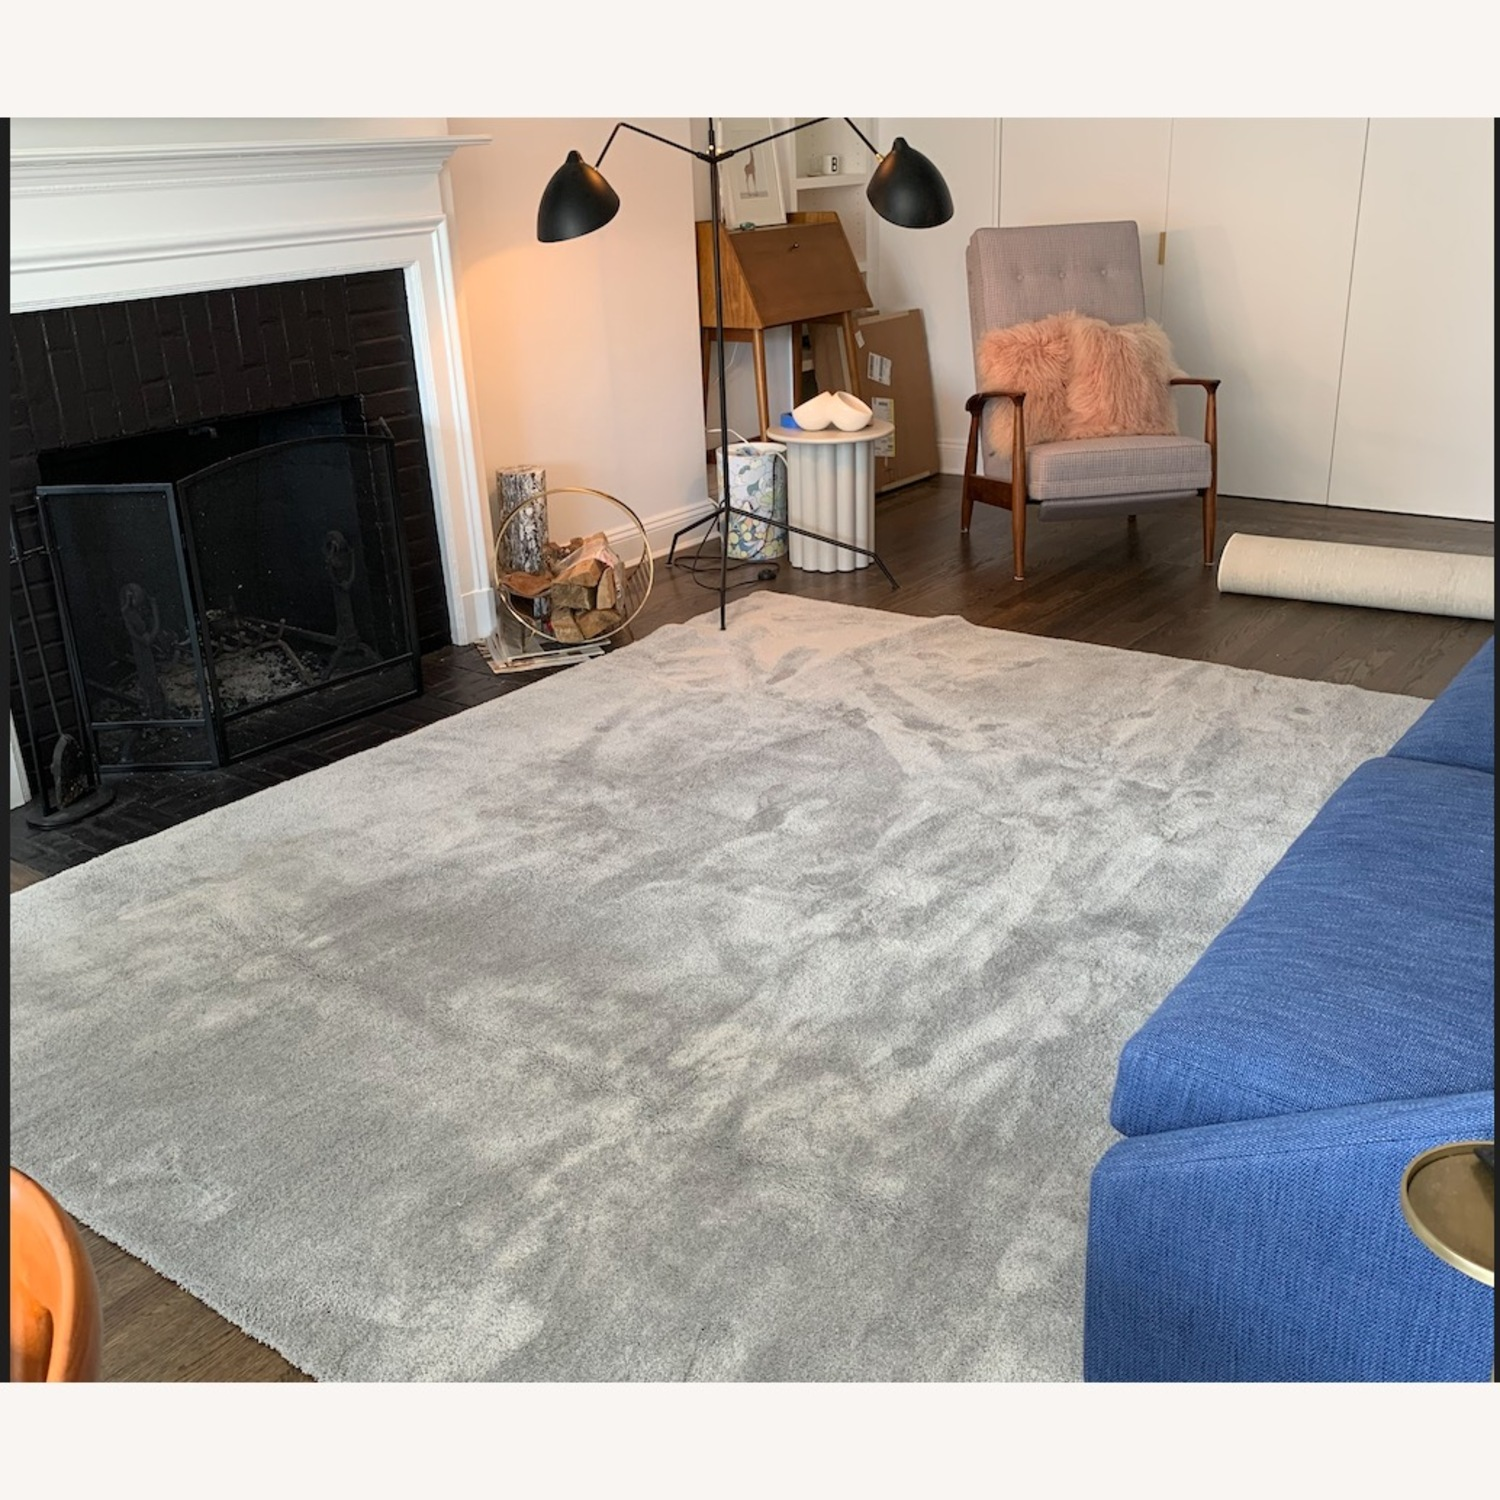 Touch Grey Area Rug - image-4